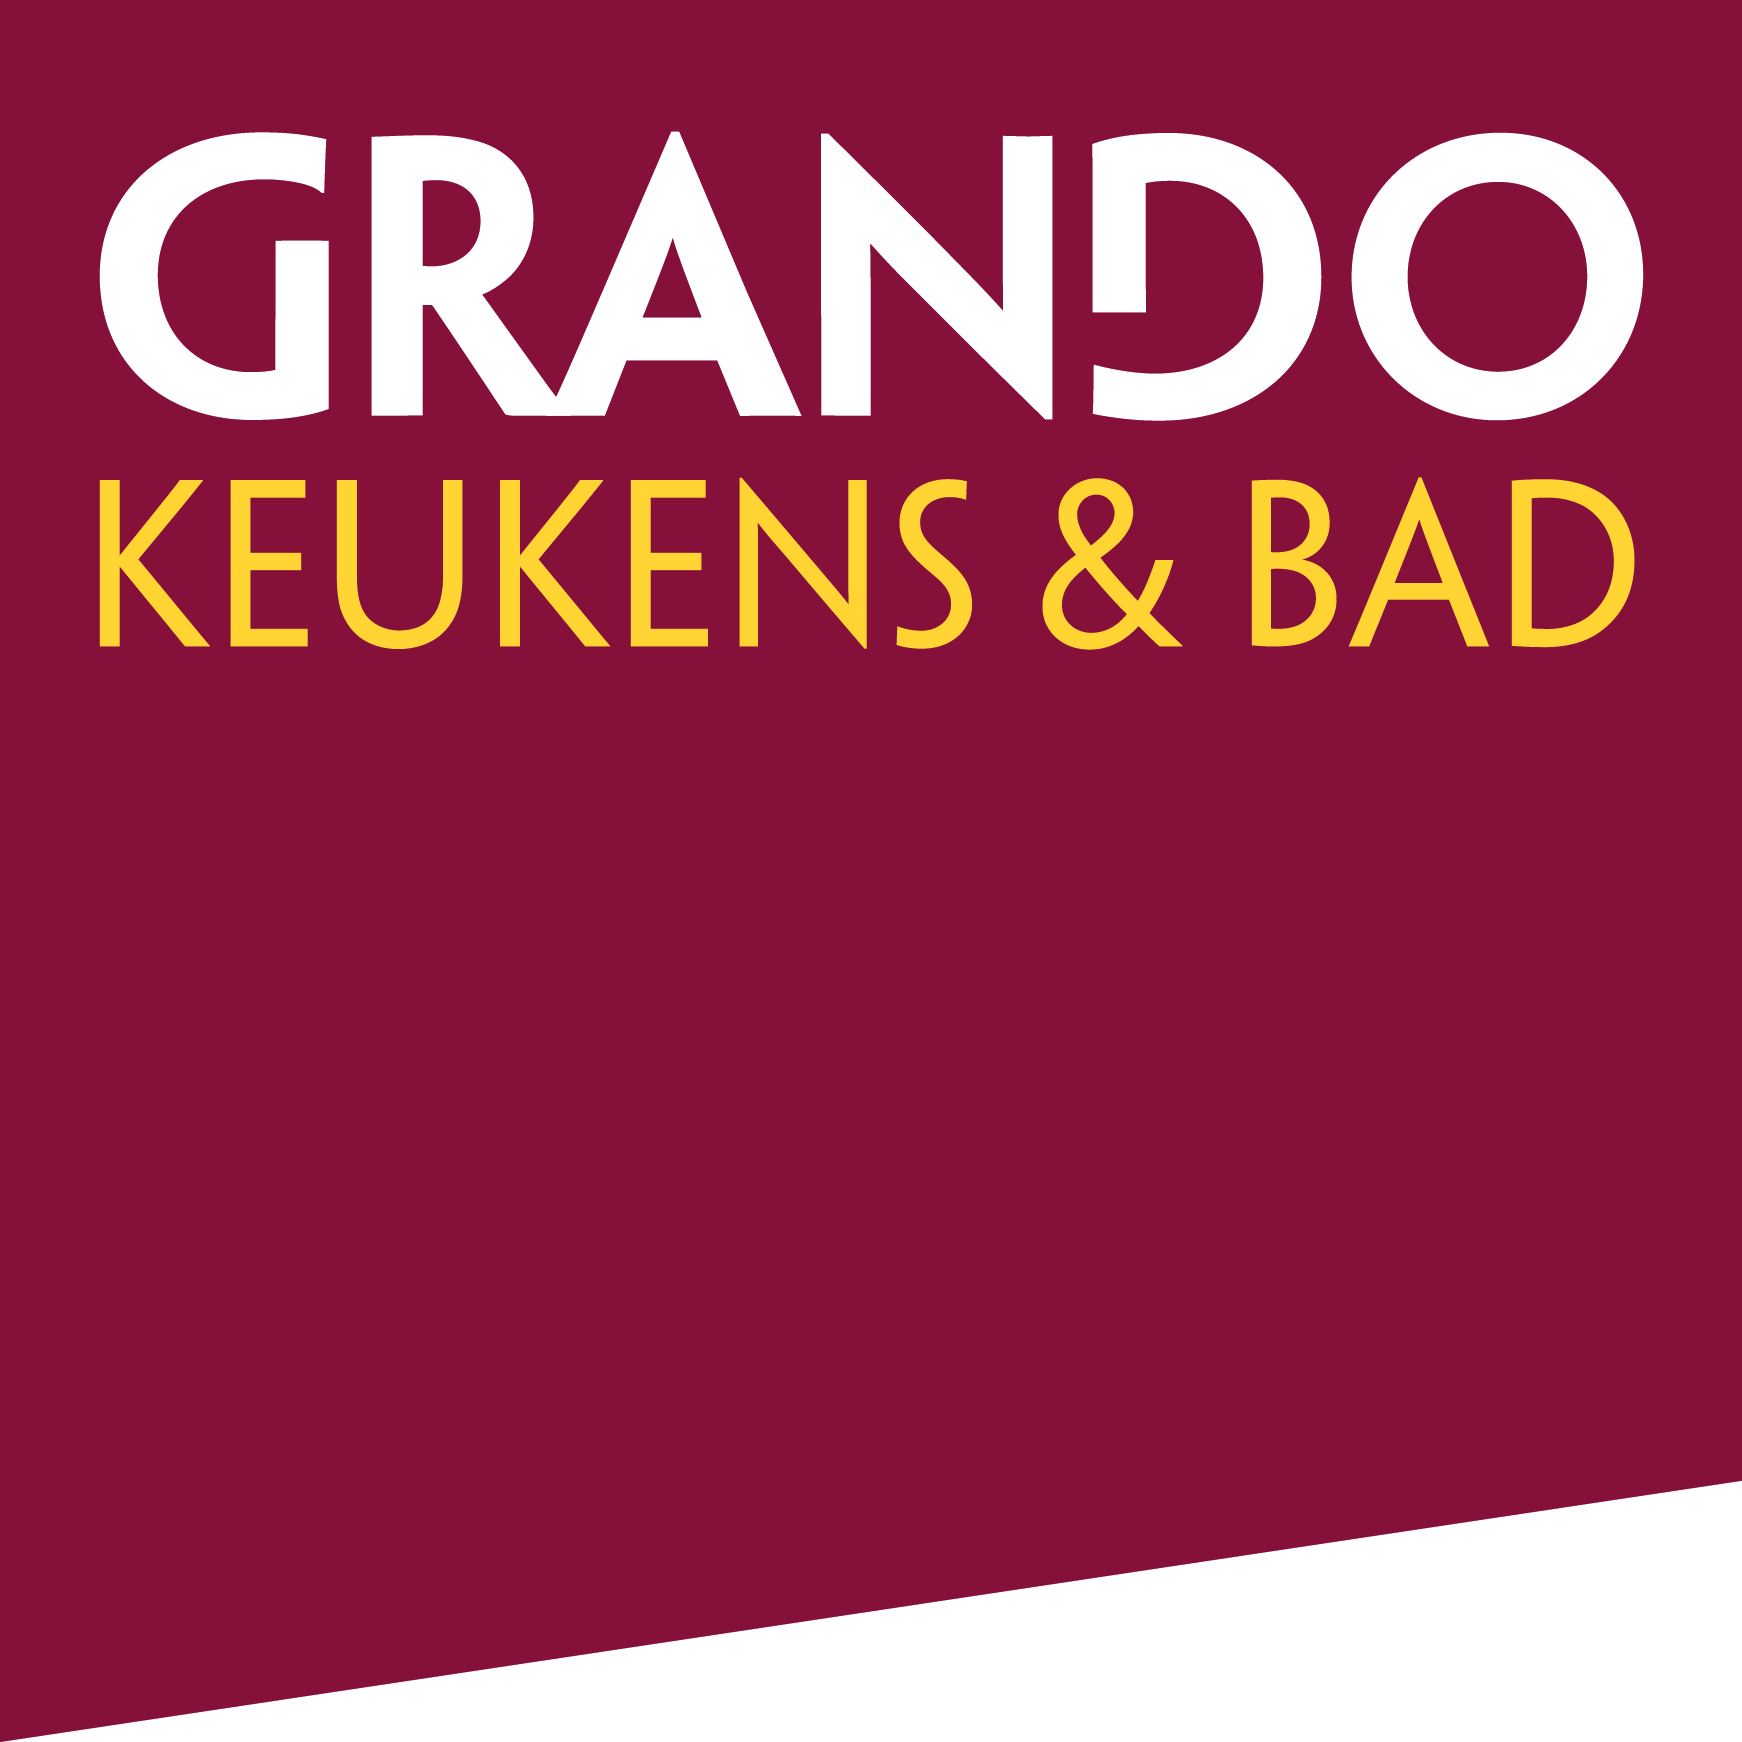 Grando Keukens & Bad Bergen